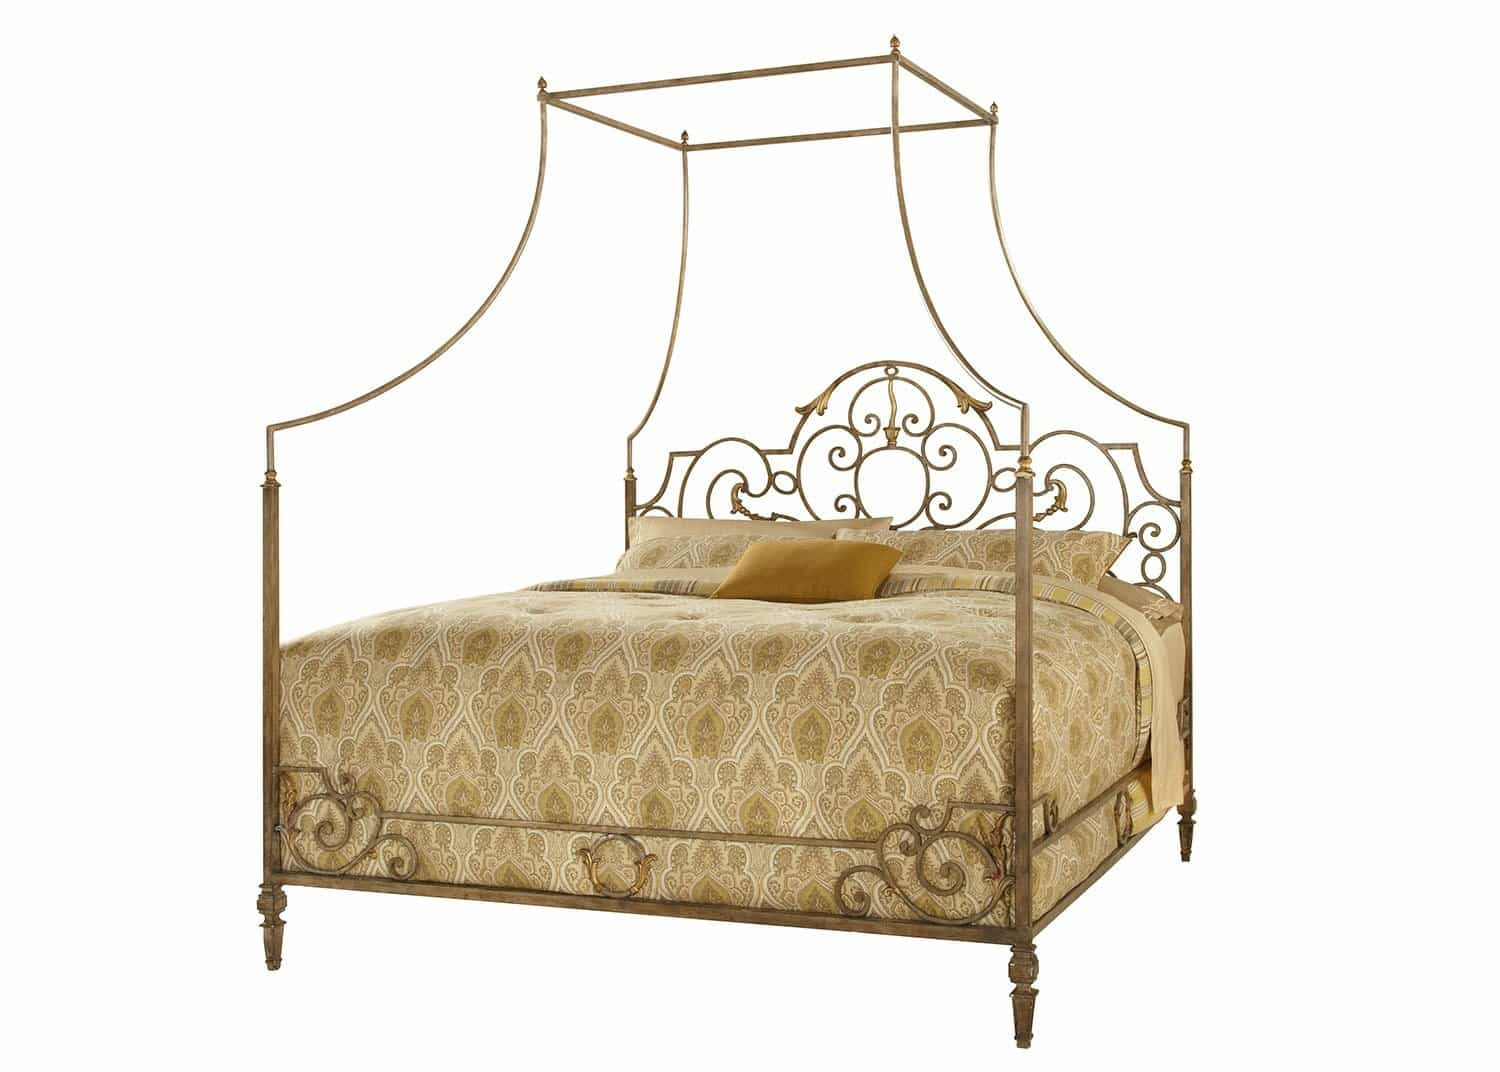 canterbury metal canaopy bed mobilart decor high end furniture. Black Bedroom Furniture Sets. Home Design Ideas